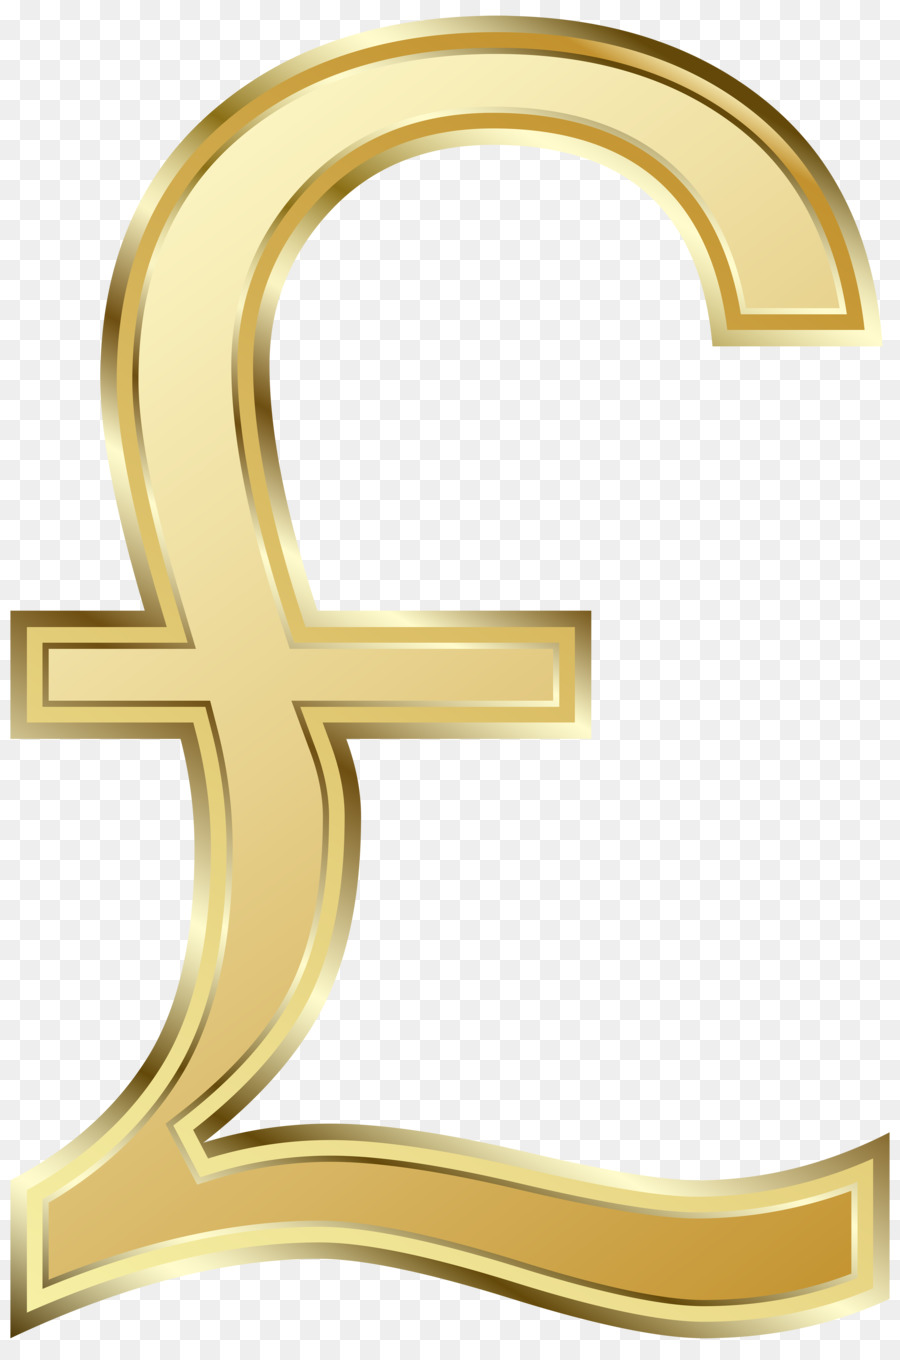 Pound Sterling Pound Sign Currency Symbol Clip Png Download 3989